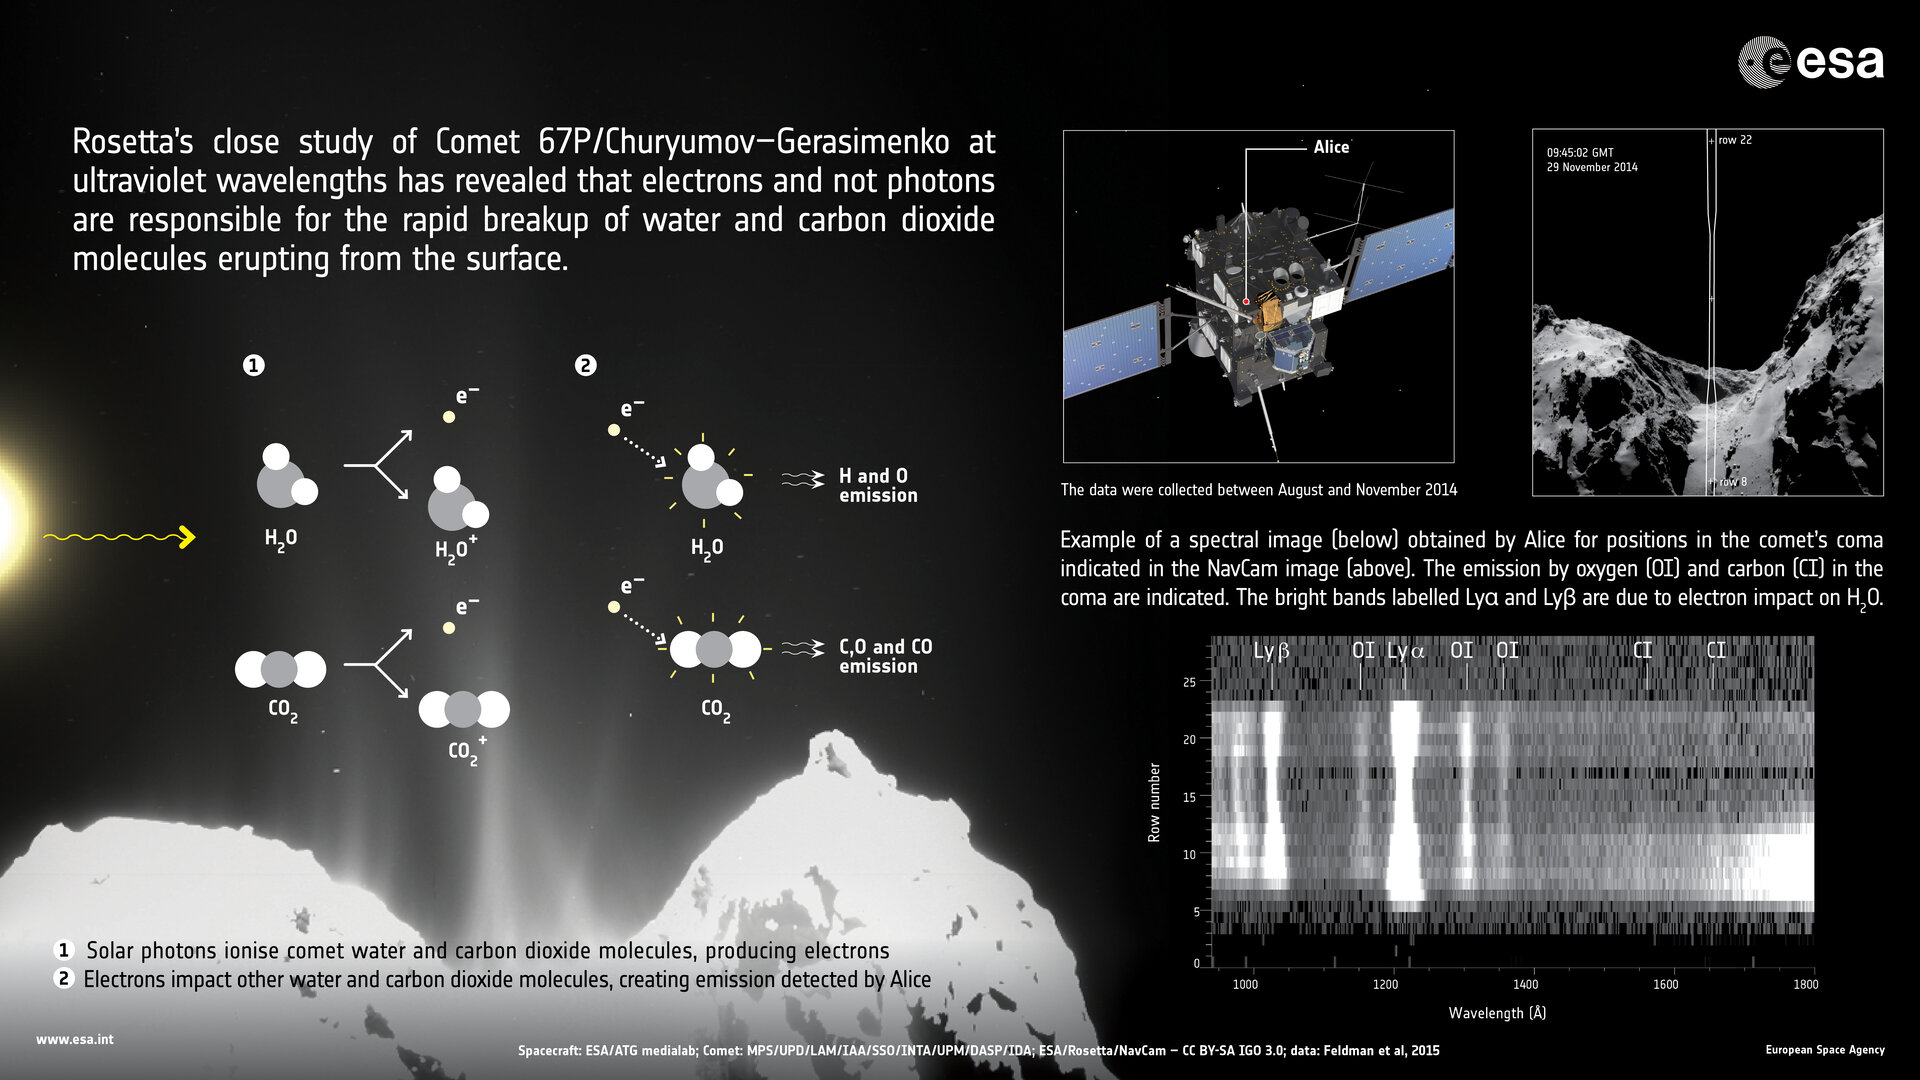 Rosetta uncovers processes at work in comet's coma